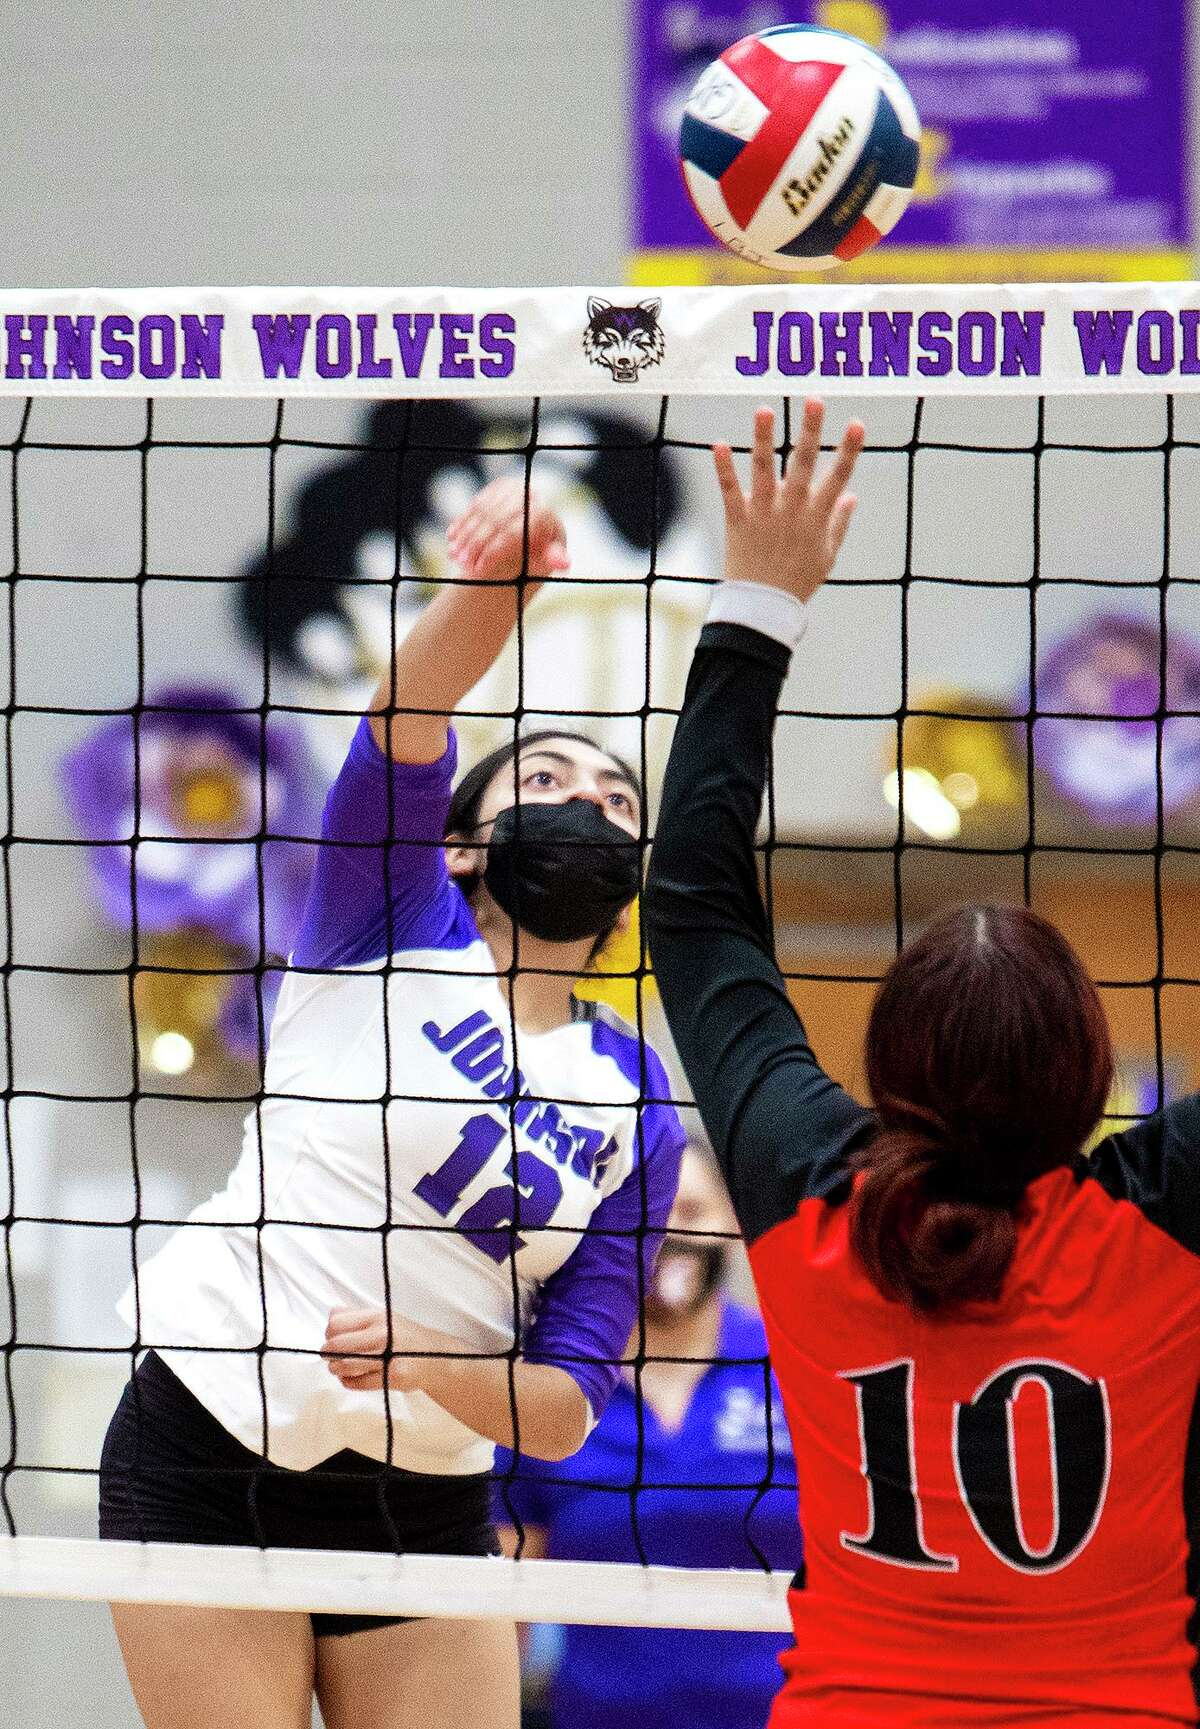 Daniela Romo and LBJ beat Dafne Ortiz and Martin 3-2 (28-26, 25-21, 24-26, 25-27, 15-9) Tuesday to sweep the tri-match they hosted. The Lady Wolves also won 3-0 (25-10, 25-13, 25-15) over CC Winn.